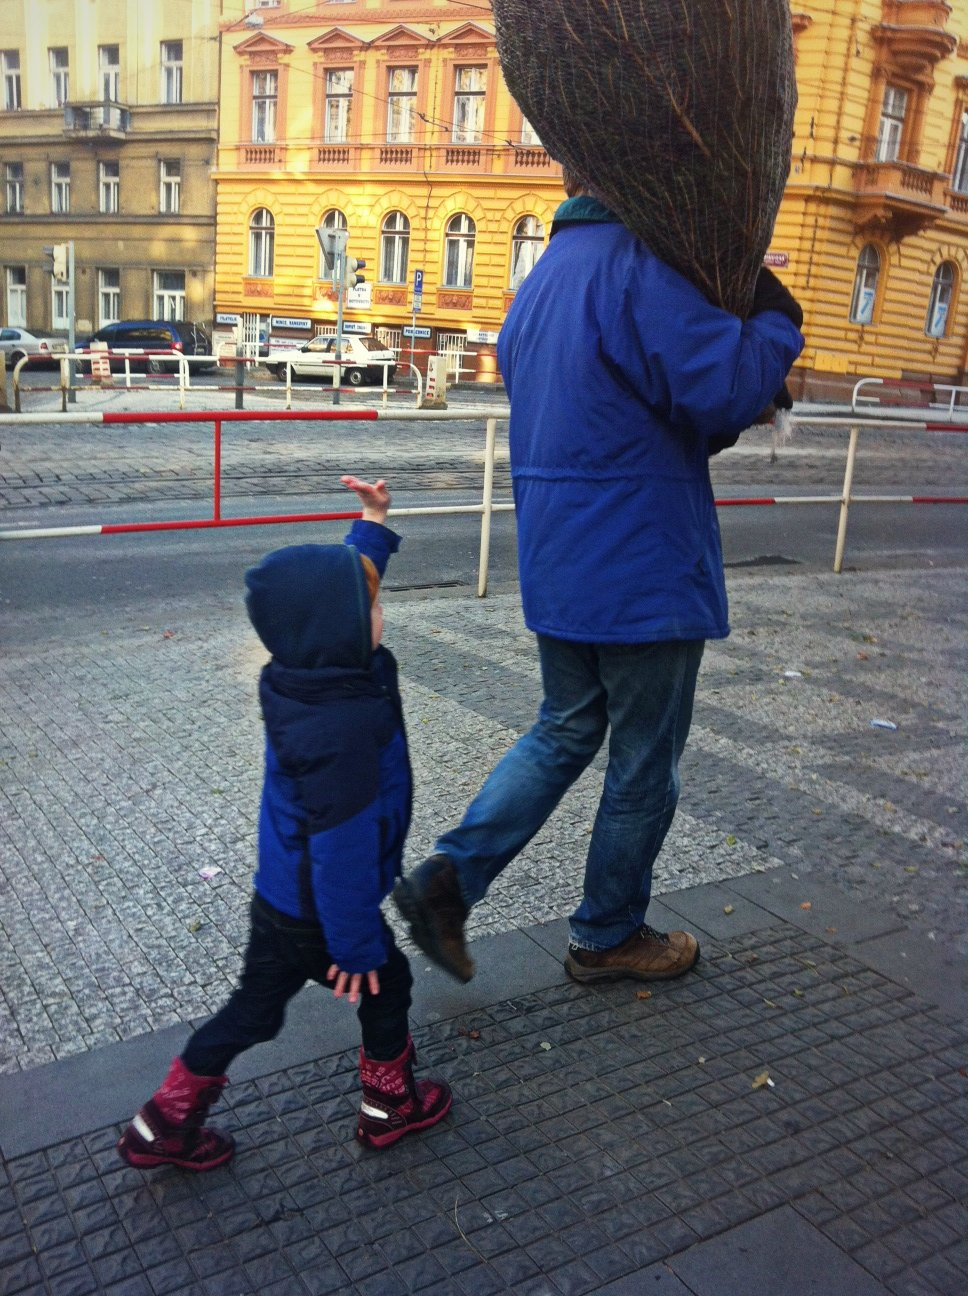 carrying the Christmas tree home, Prague, Czech Republic